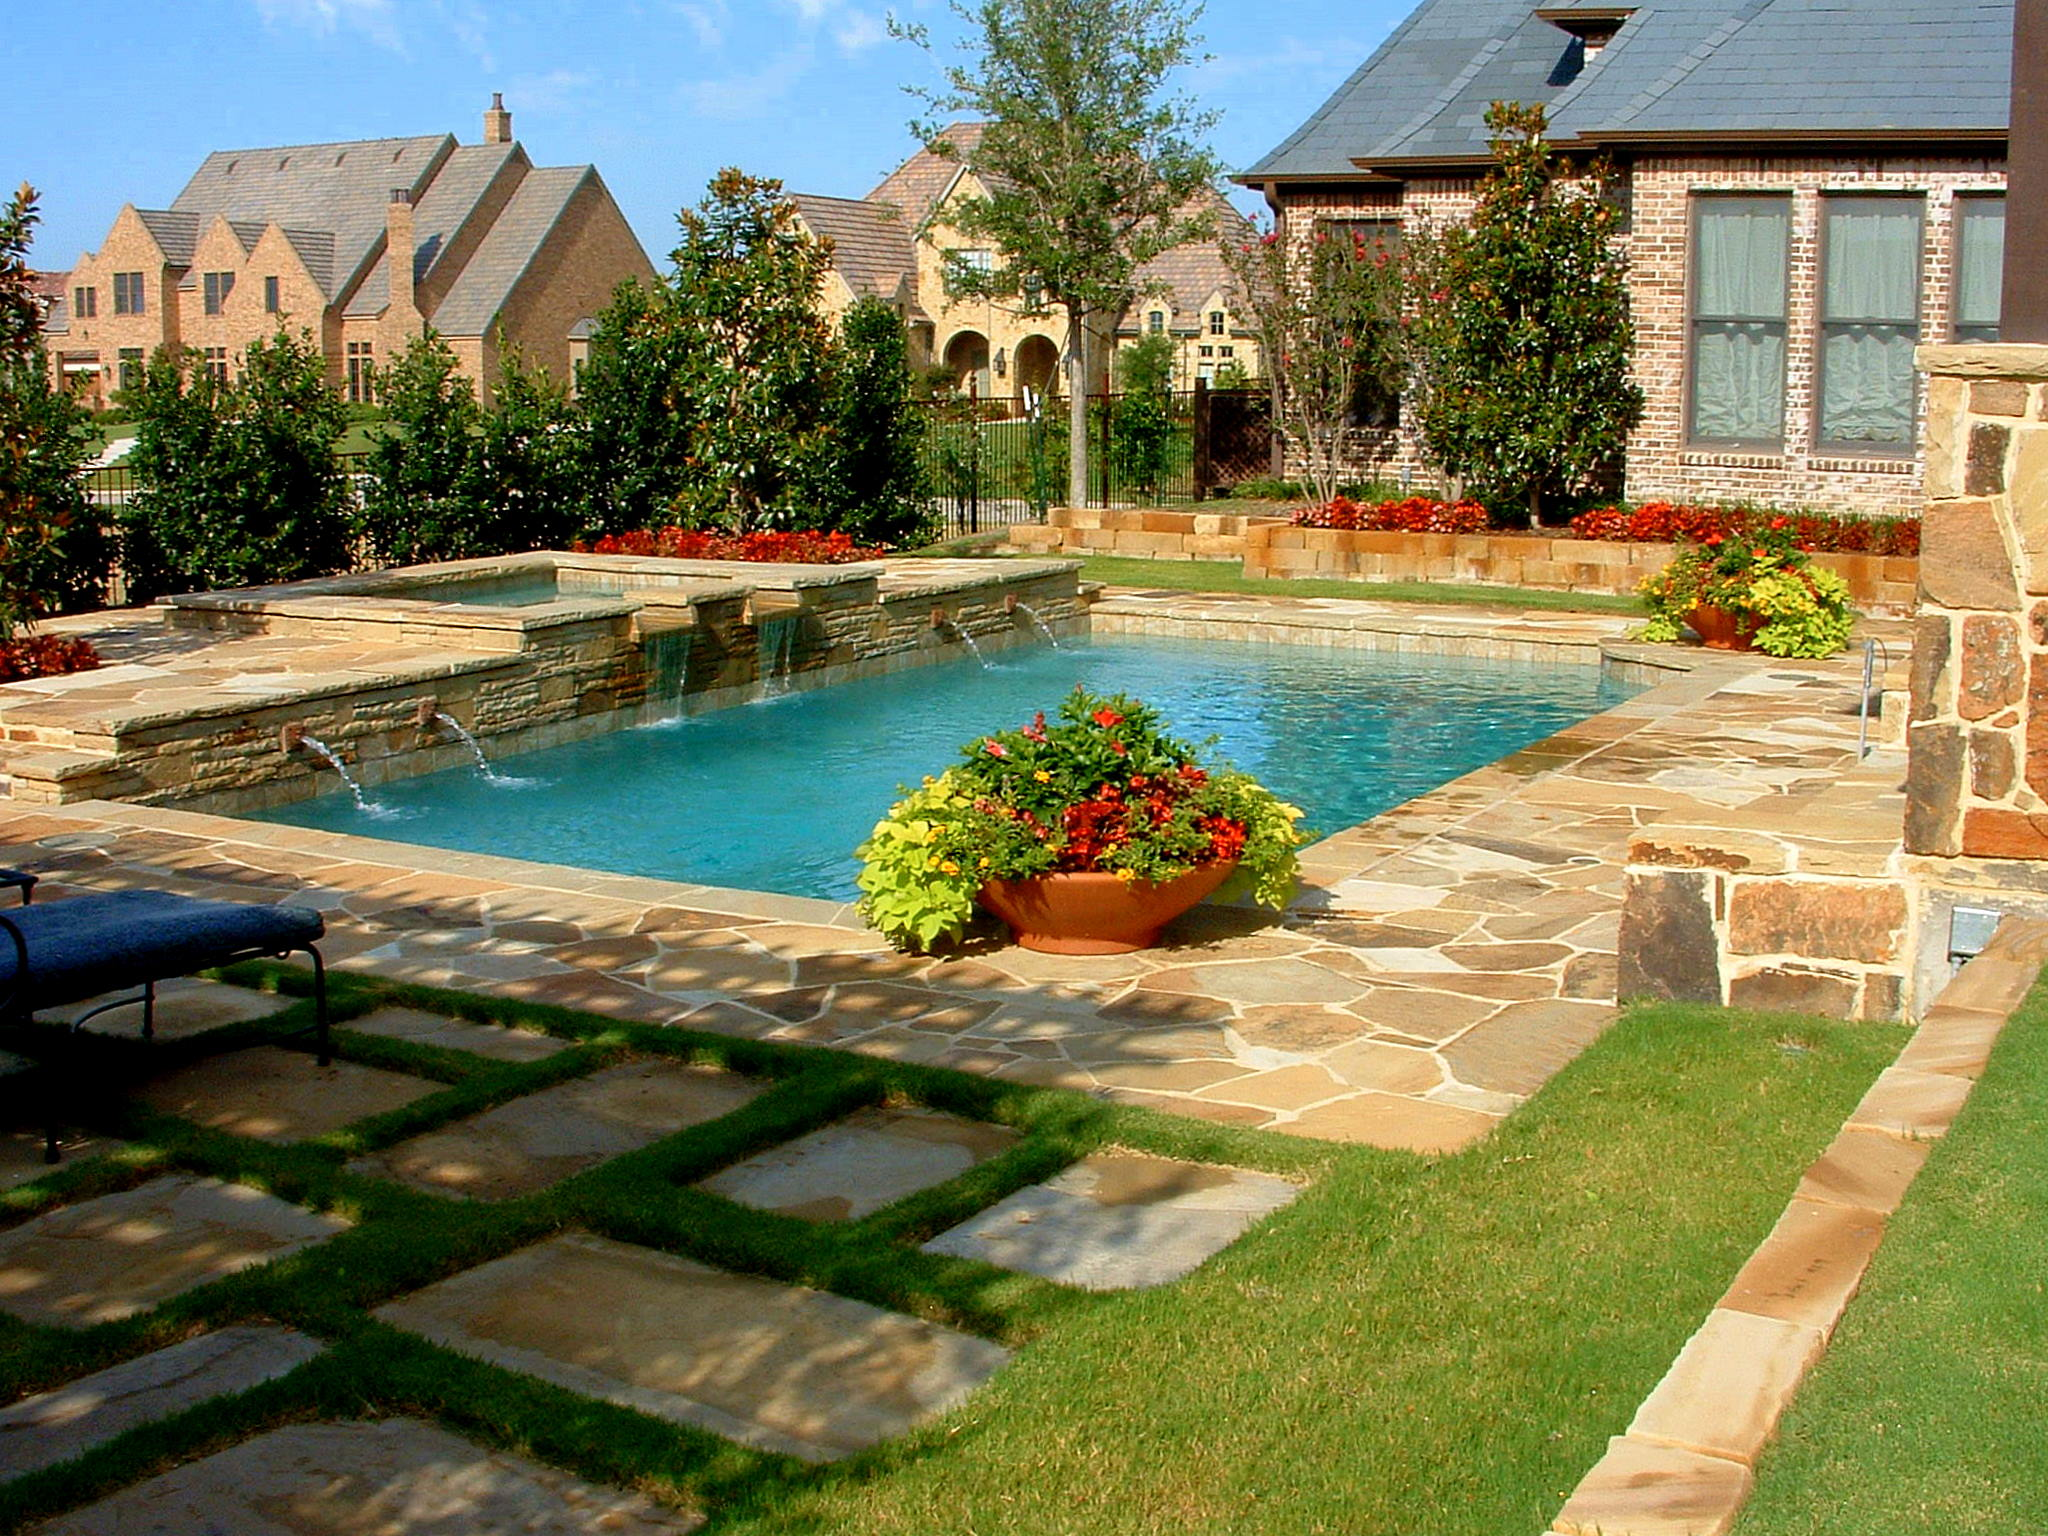 Backyard landscaping ideas swimming pool design for Design your backyard landscape